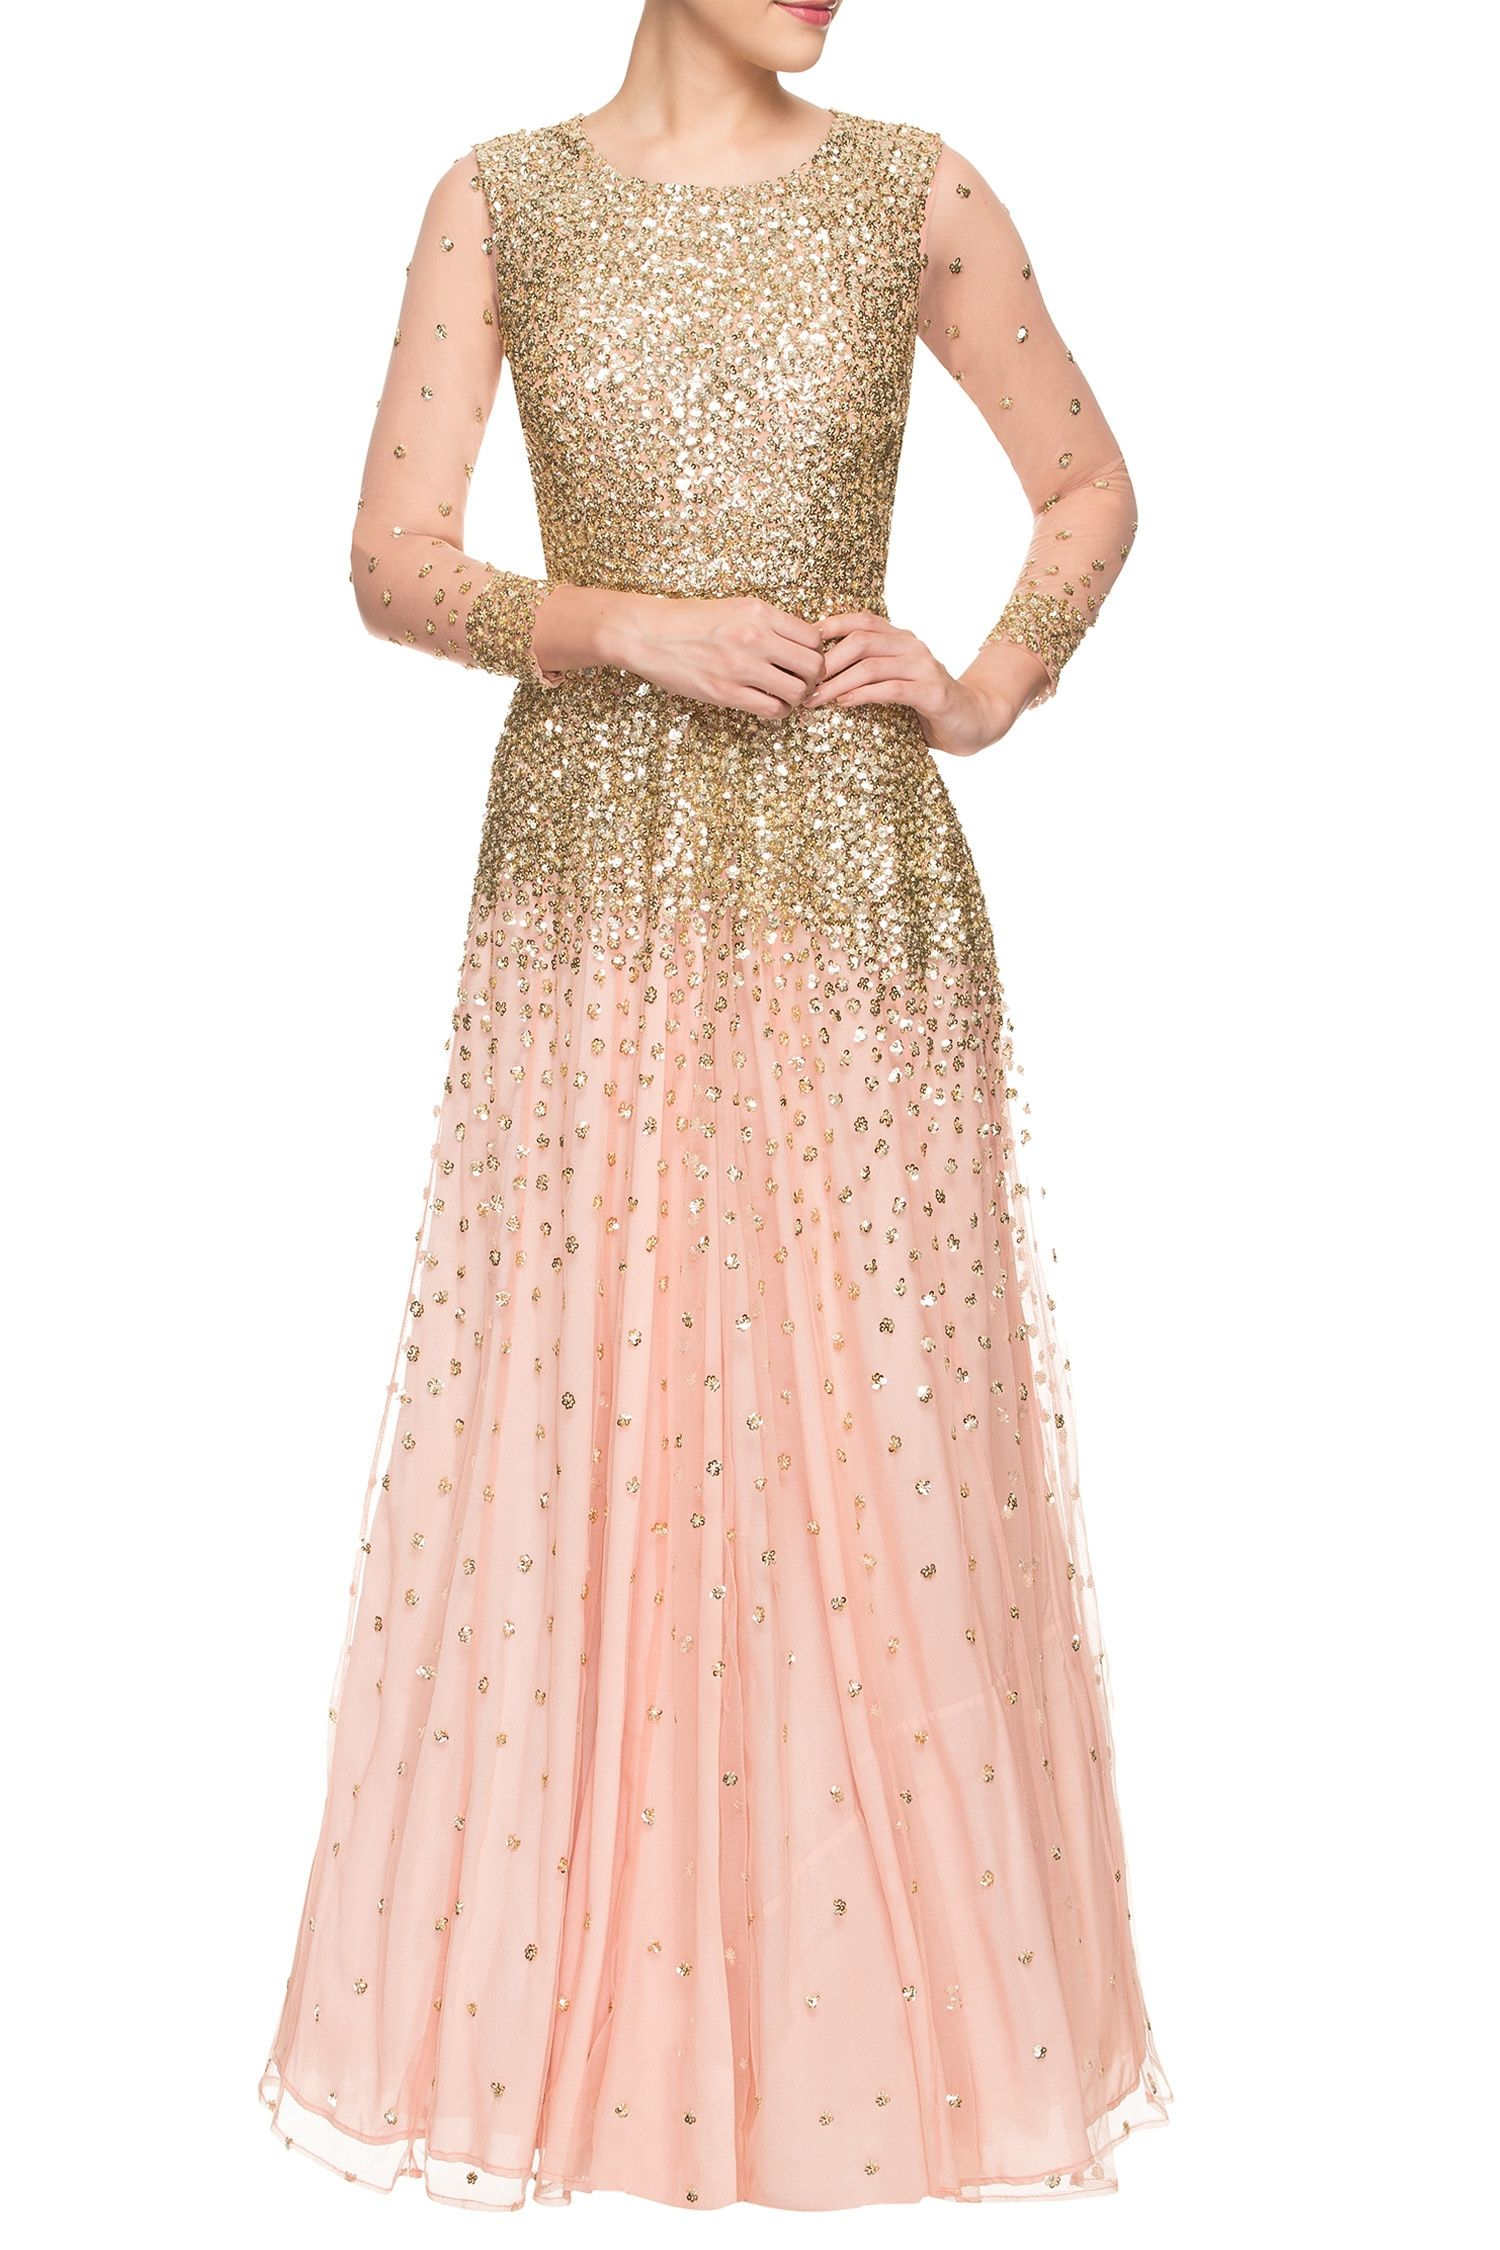 Image result for ASTHA NARANG Gowns, Fashion, Formal